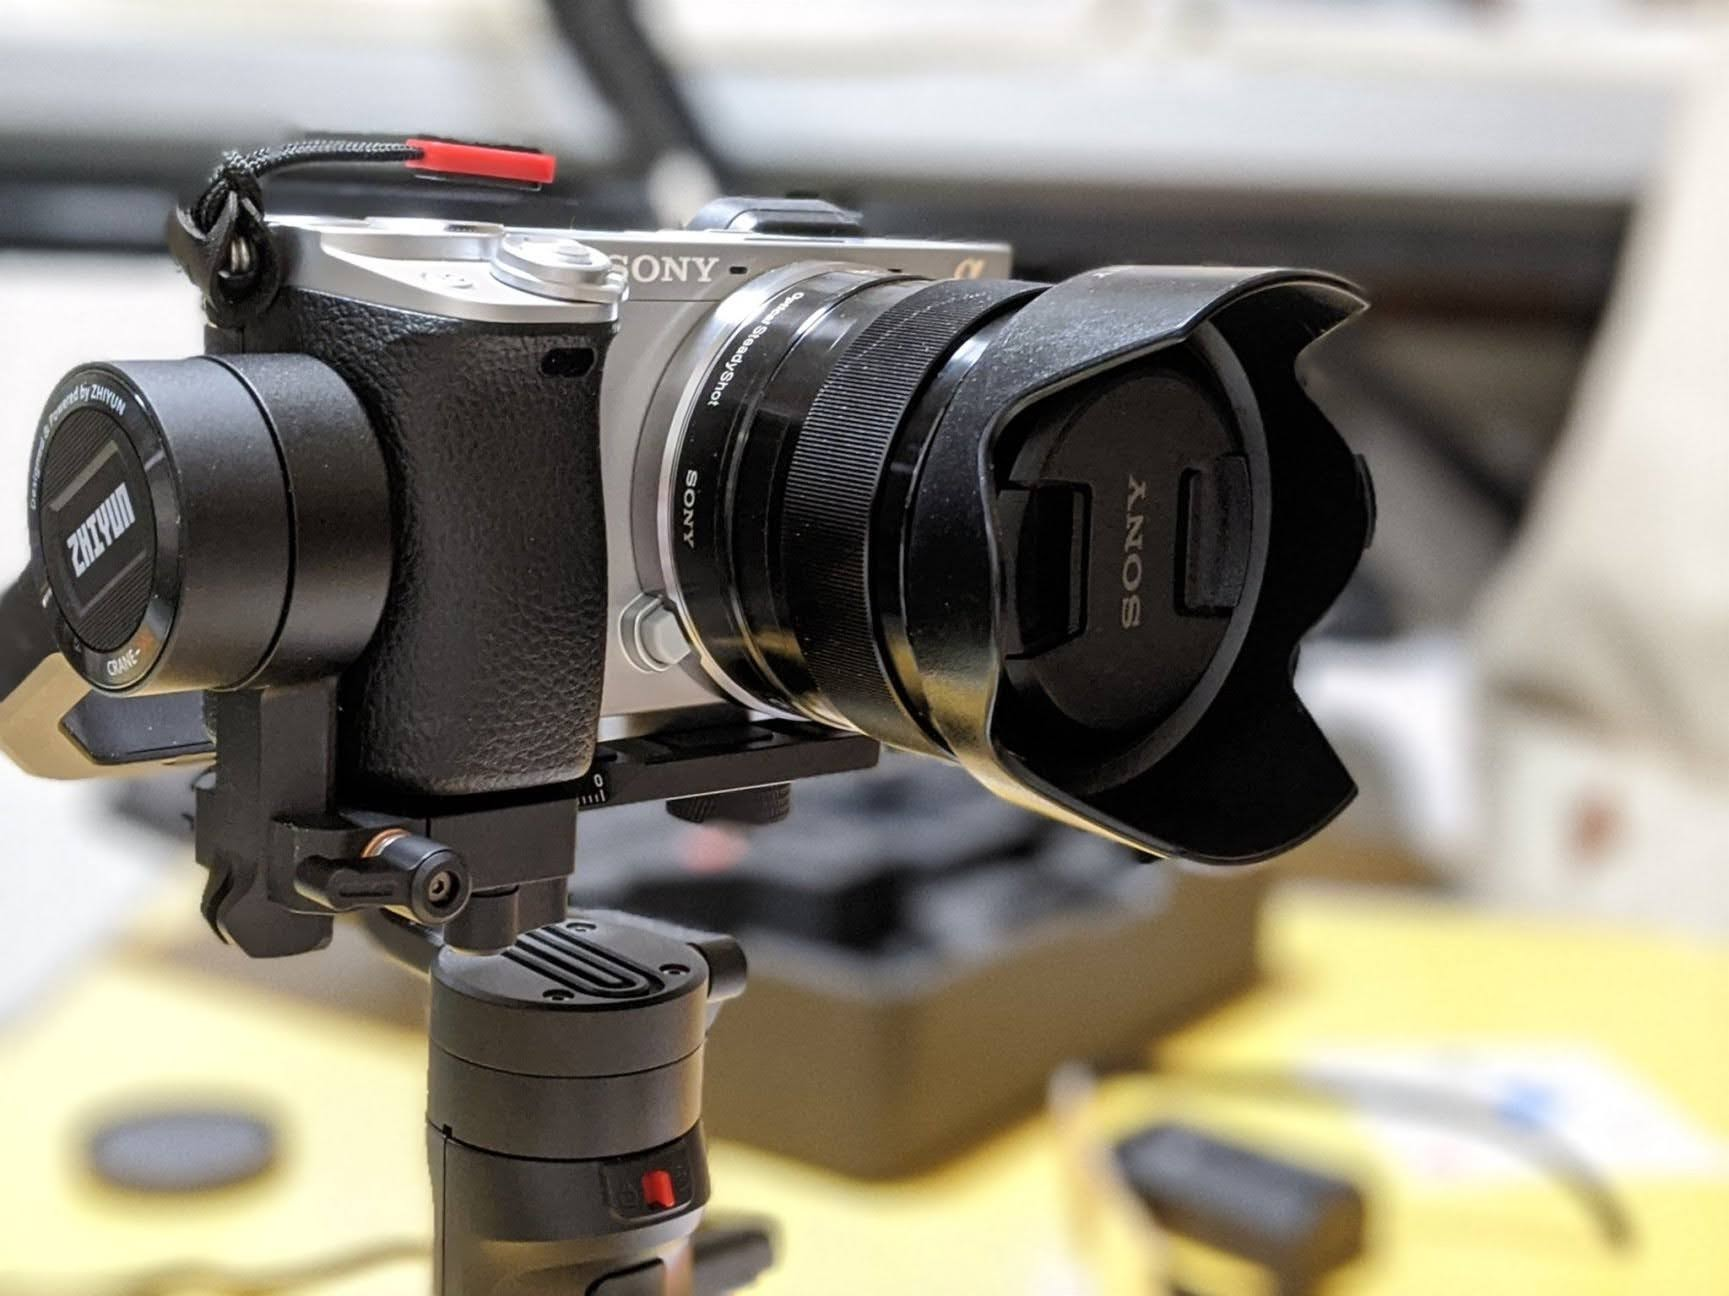 「Zhiyun-Tech Crane M2」とSONY α6400で深谷グリーンパークを撮影(テスト動画)